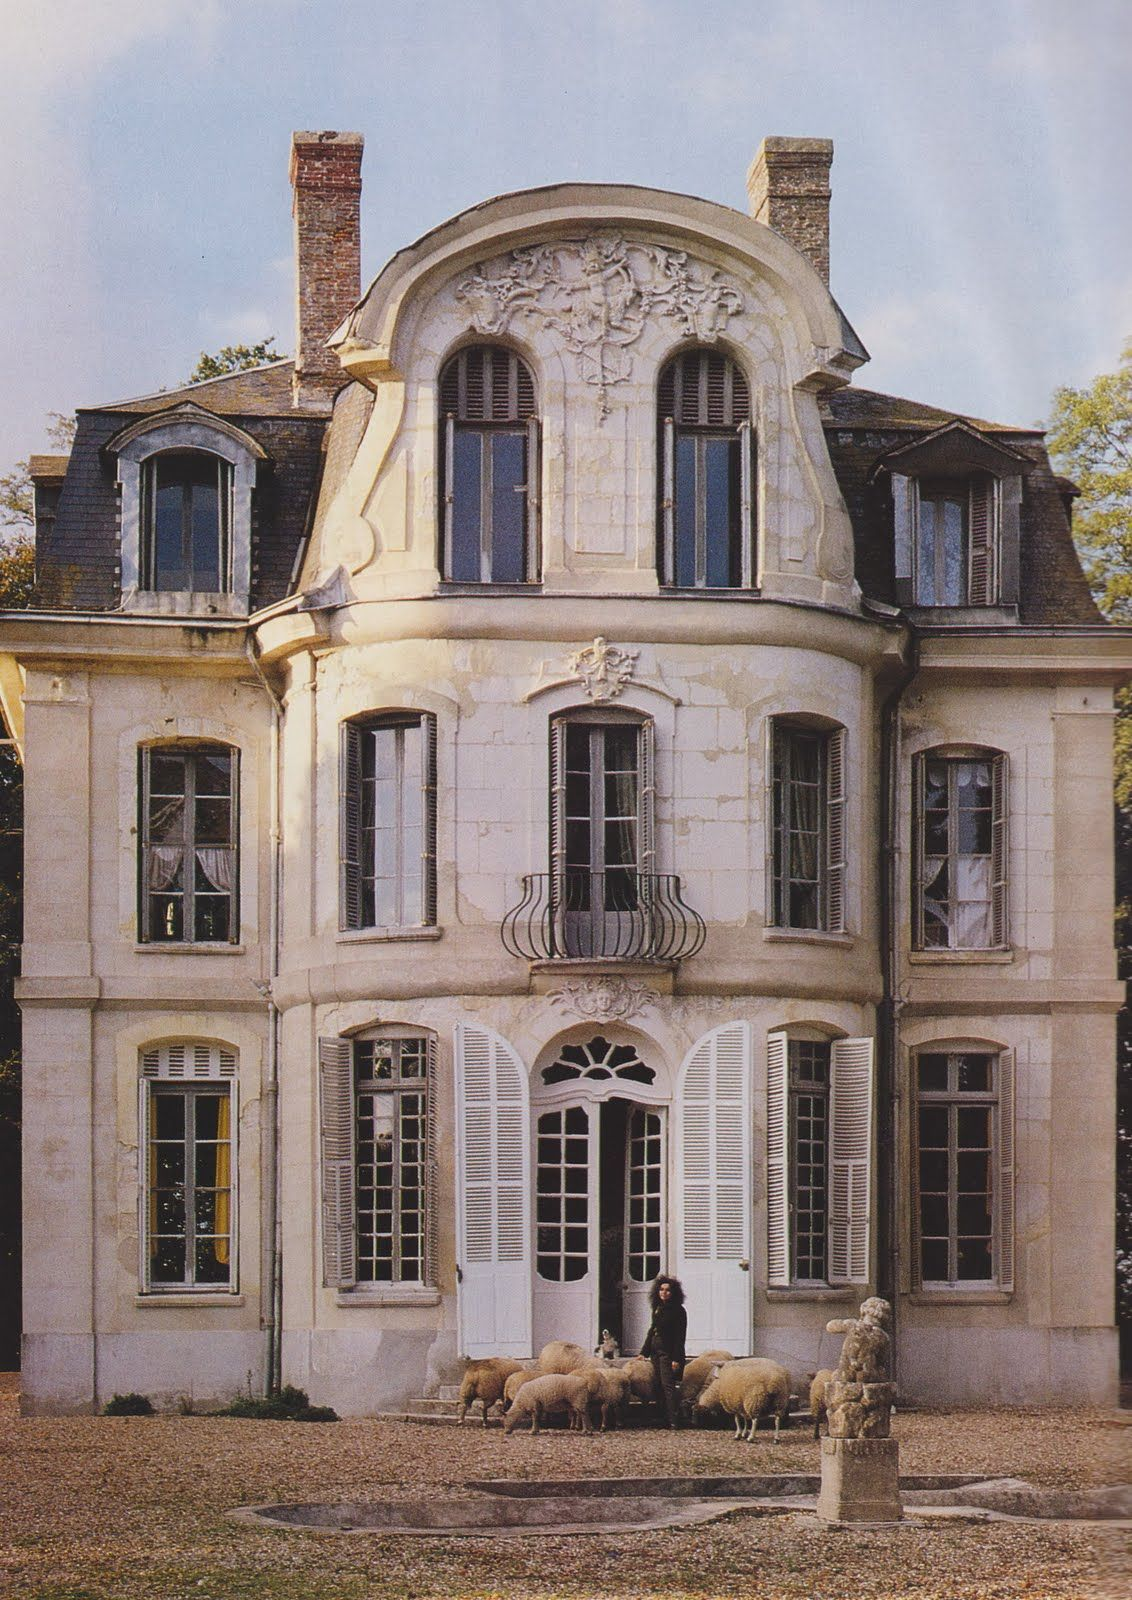 Französischer Landhausstil The Chateau De Morsan Normandy France Eure Buildings